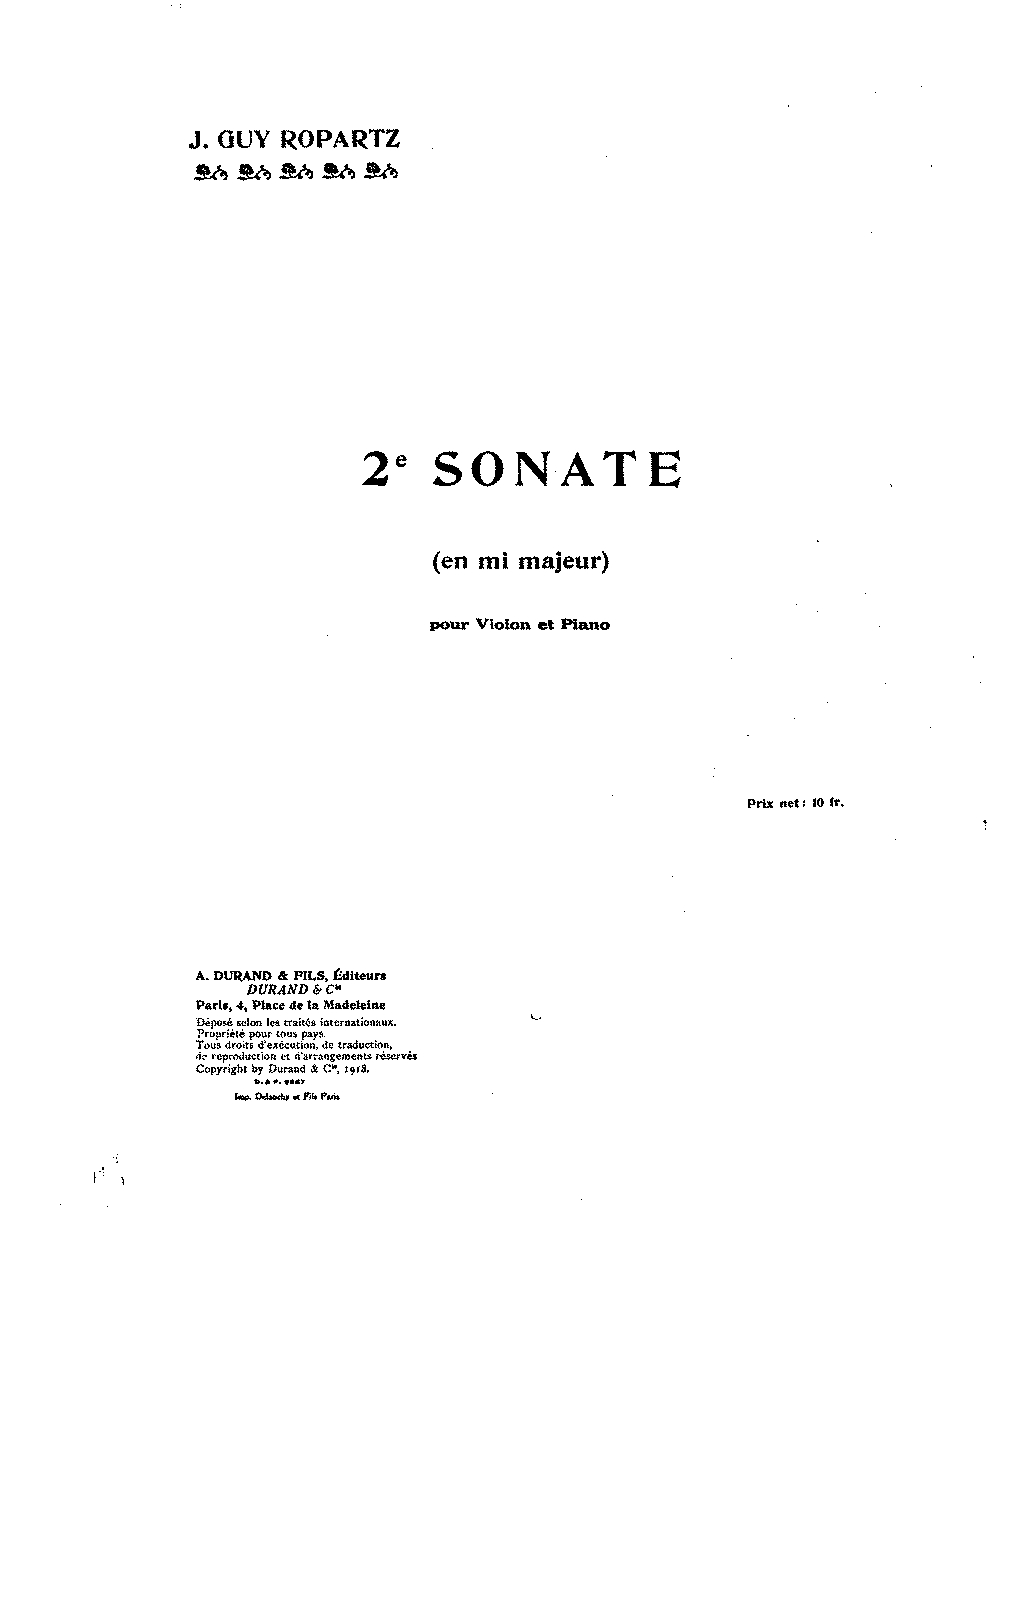 Ropartz piano2.pdf